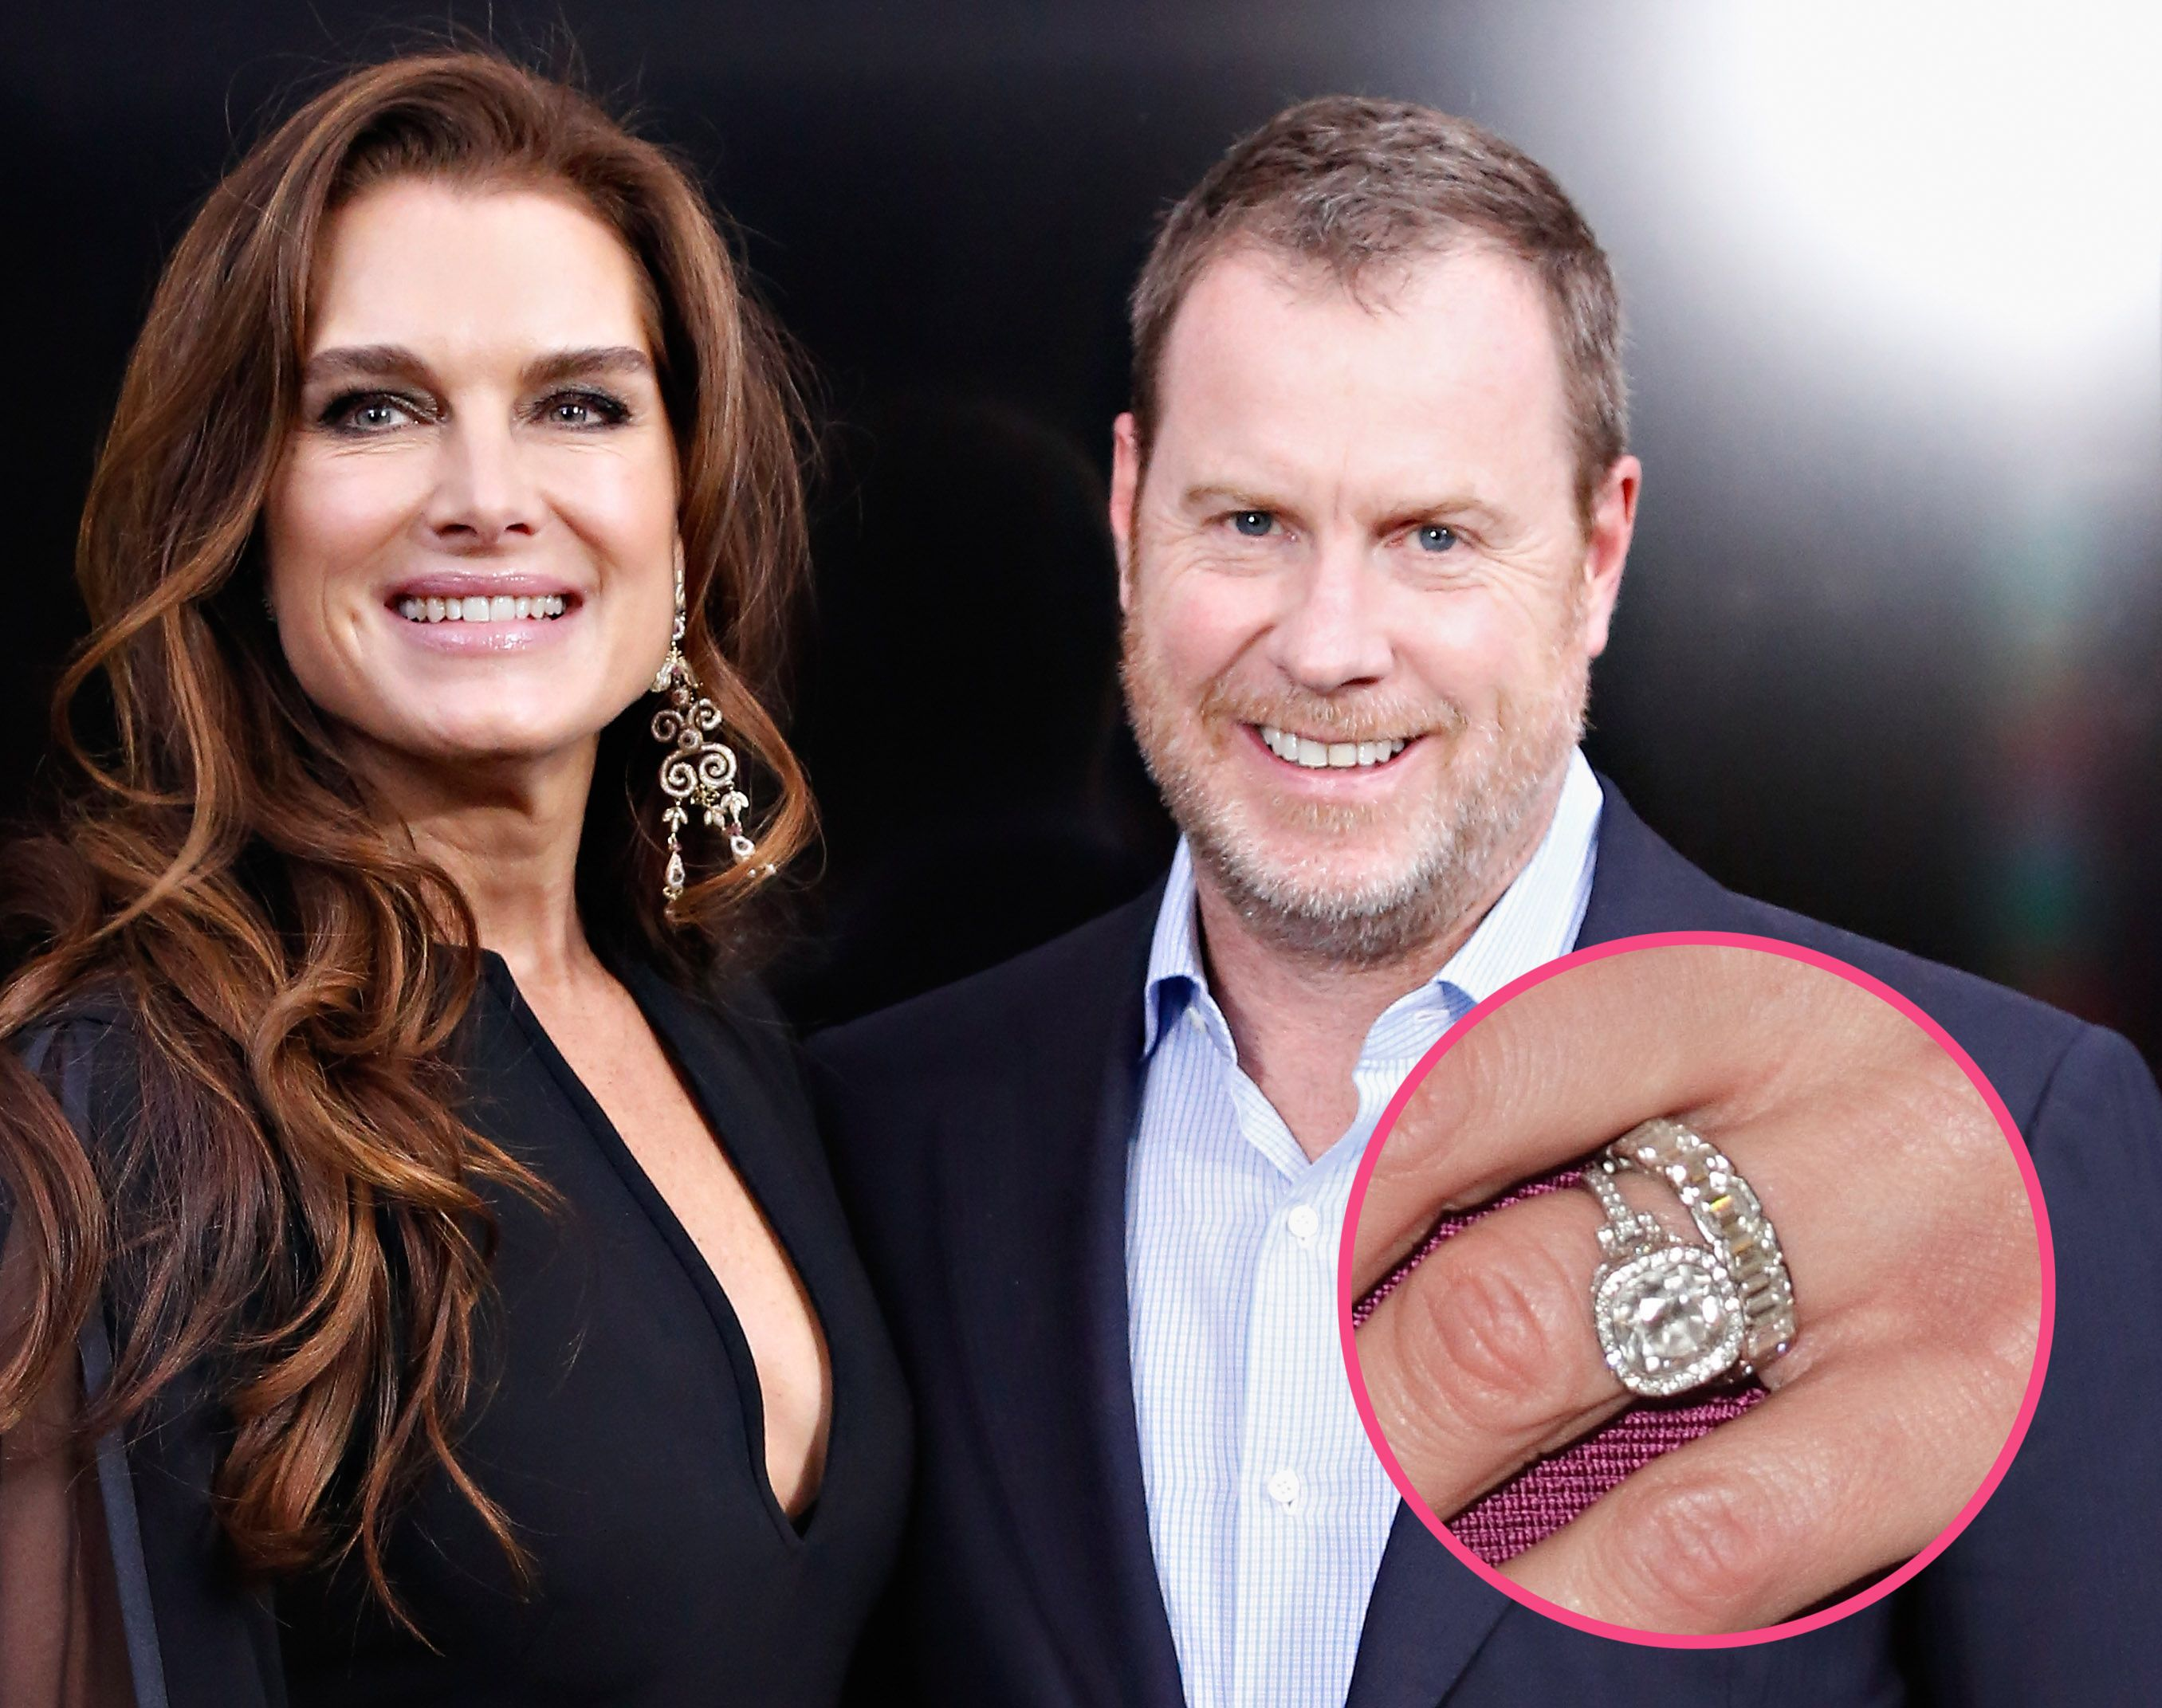 celeb of best manicures it nailing rings celebrity engagement the